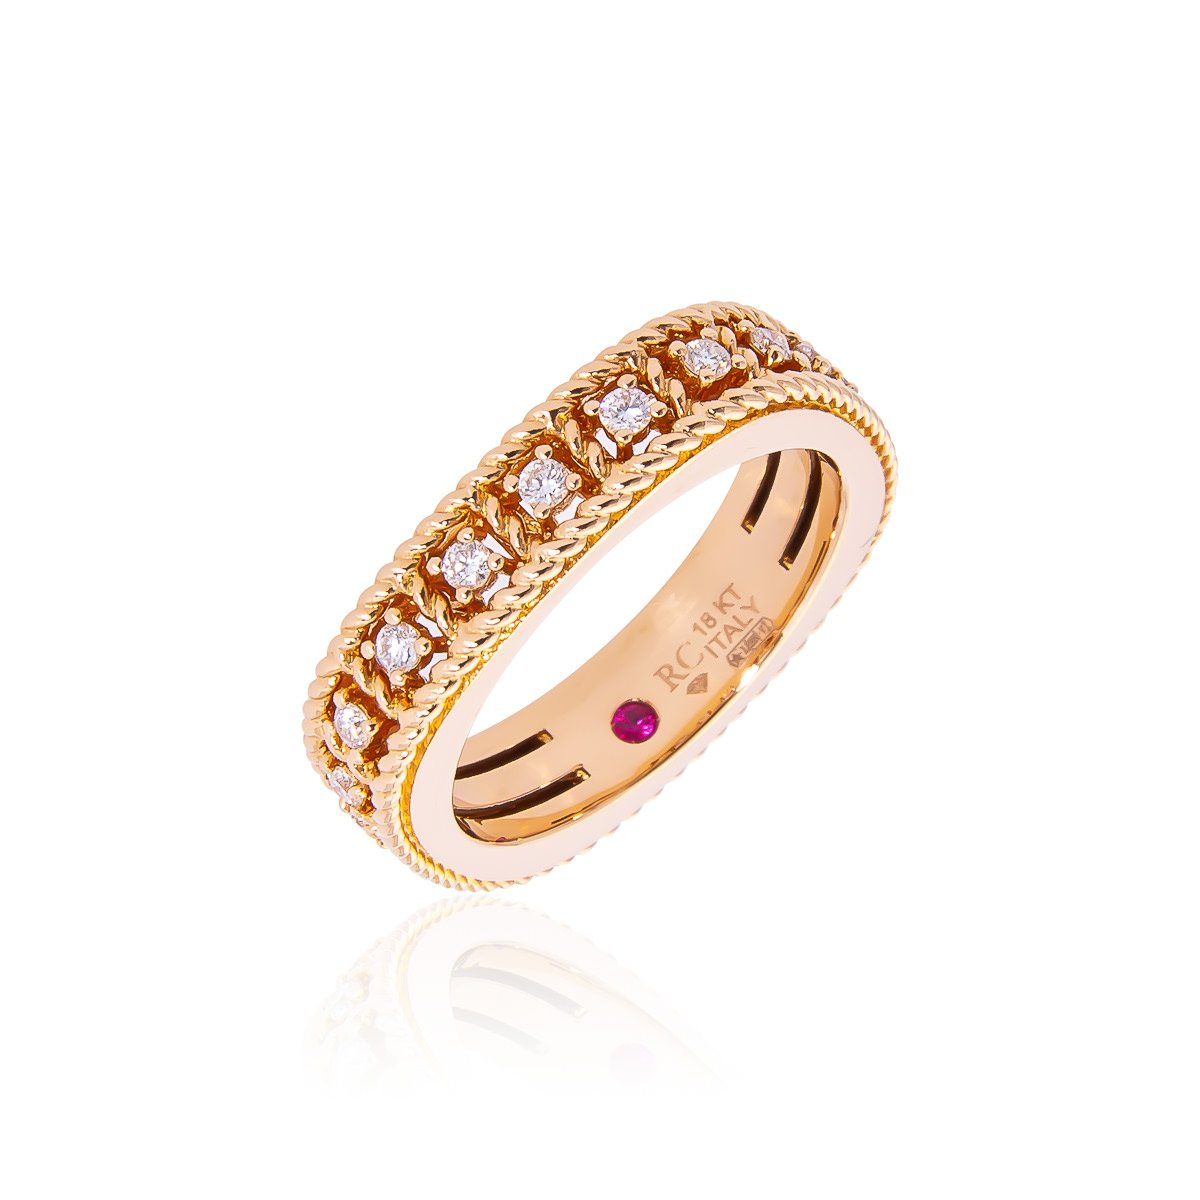 Roberto Coin Byzantine Barocco 18K Rose Gold Diamond Single Row Ring